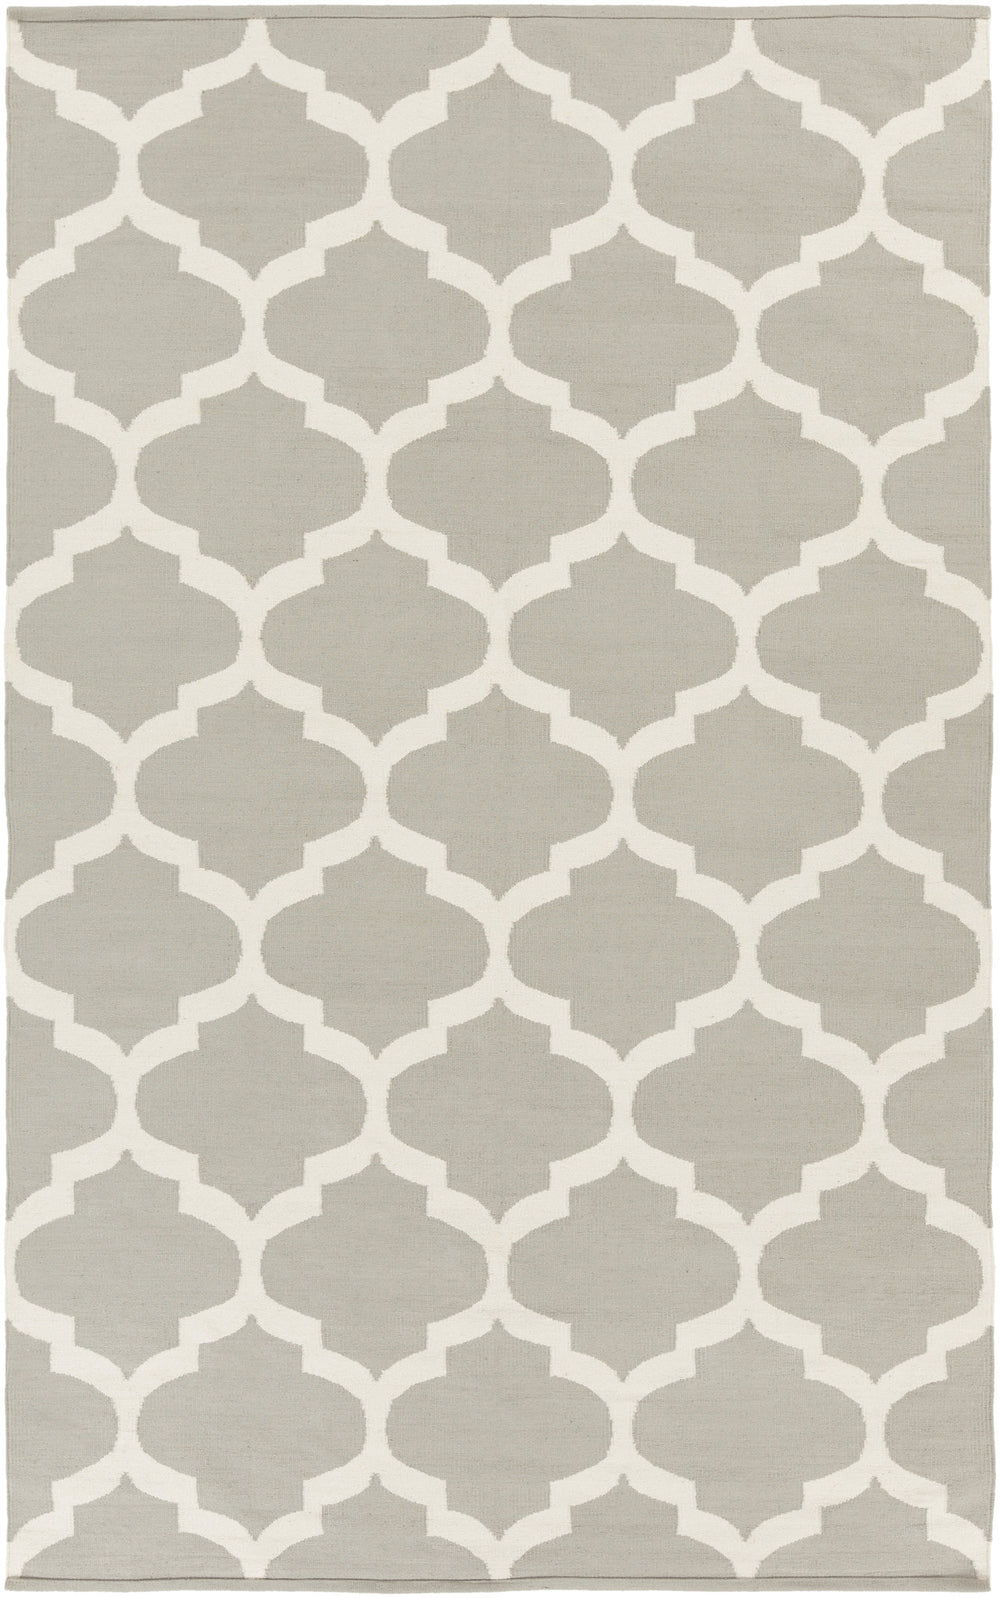 Artistic Weavers Vogue Everly AWLT3004 Area Rug